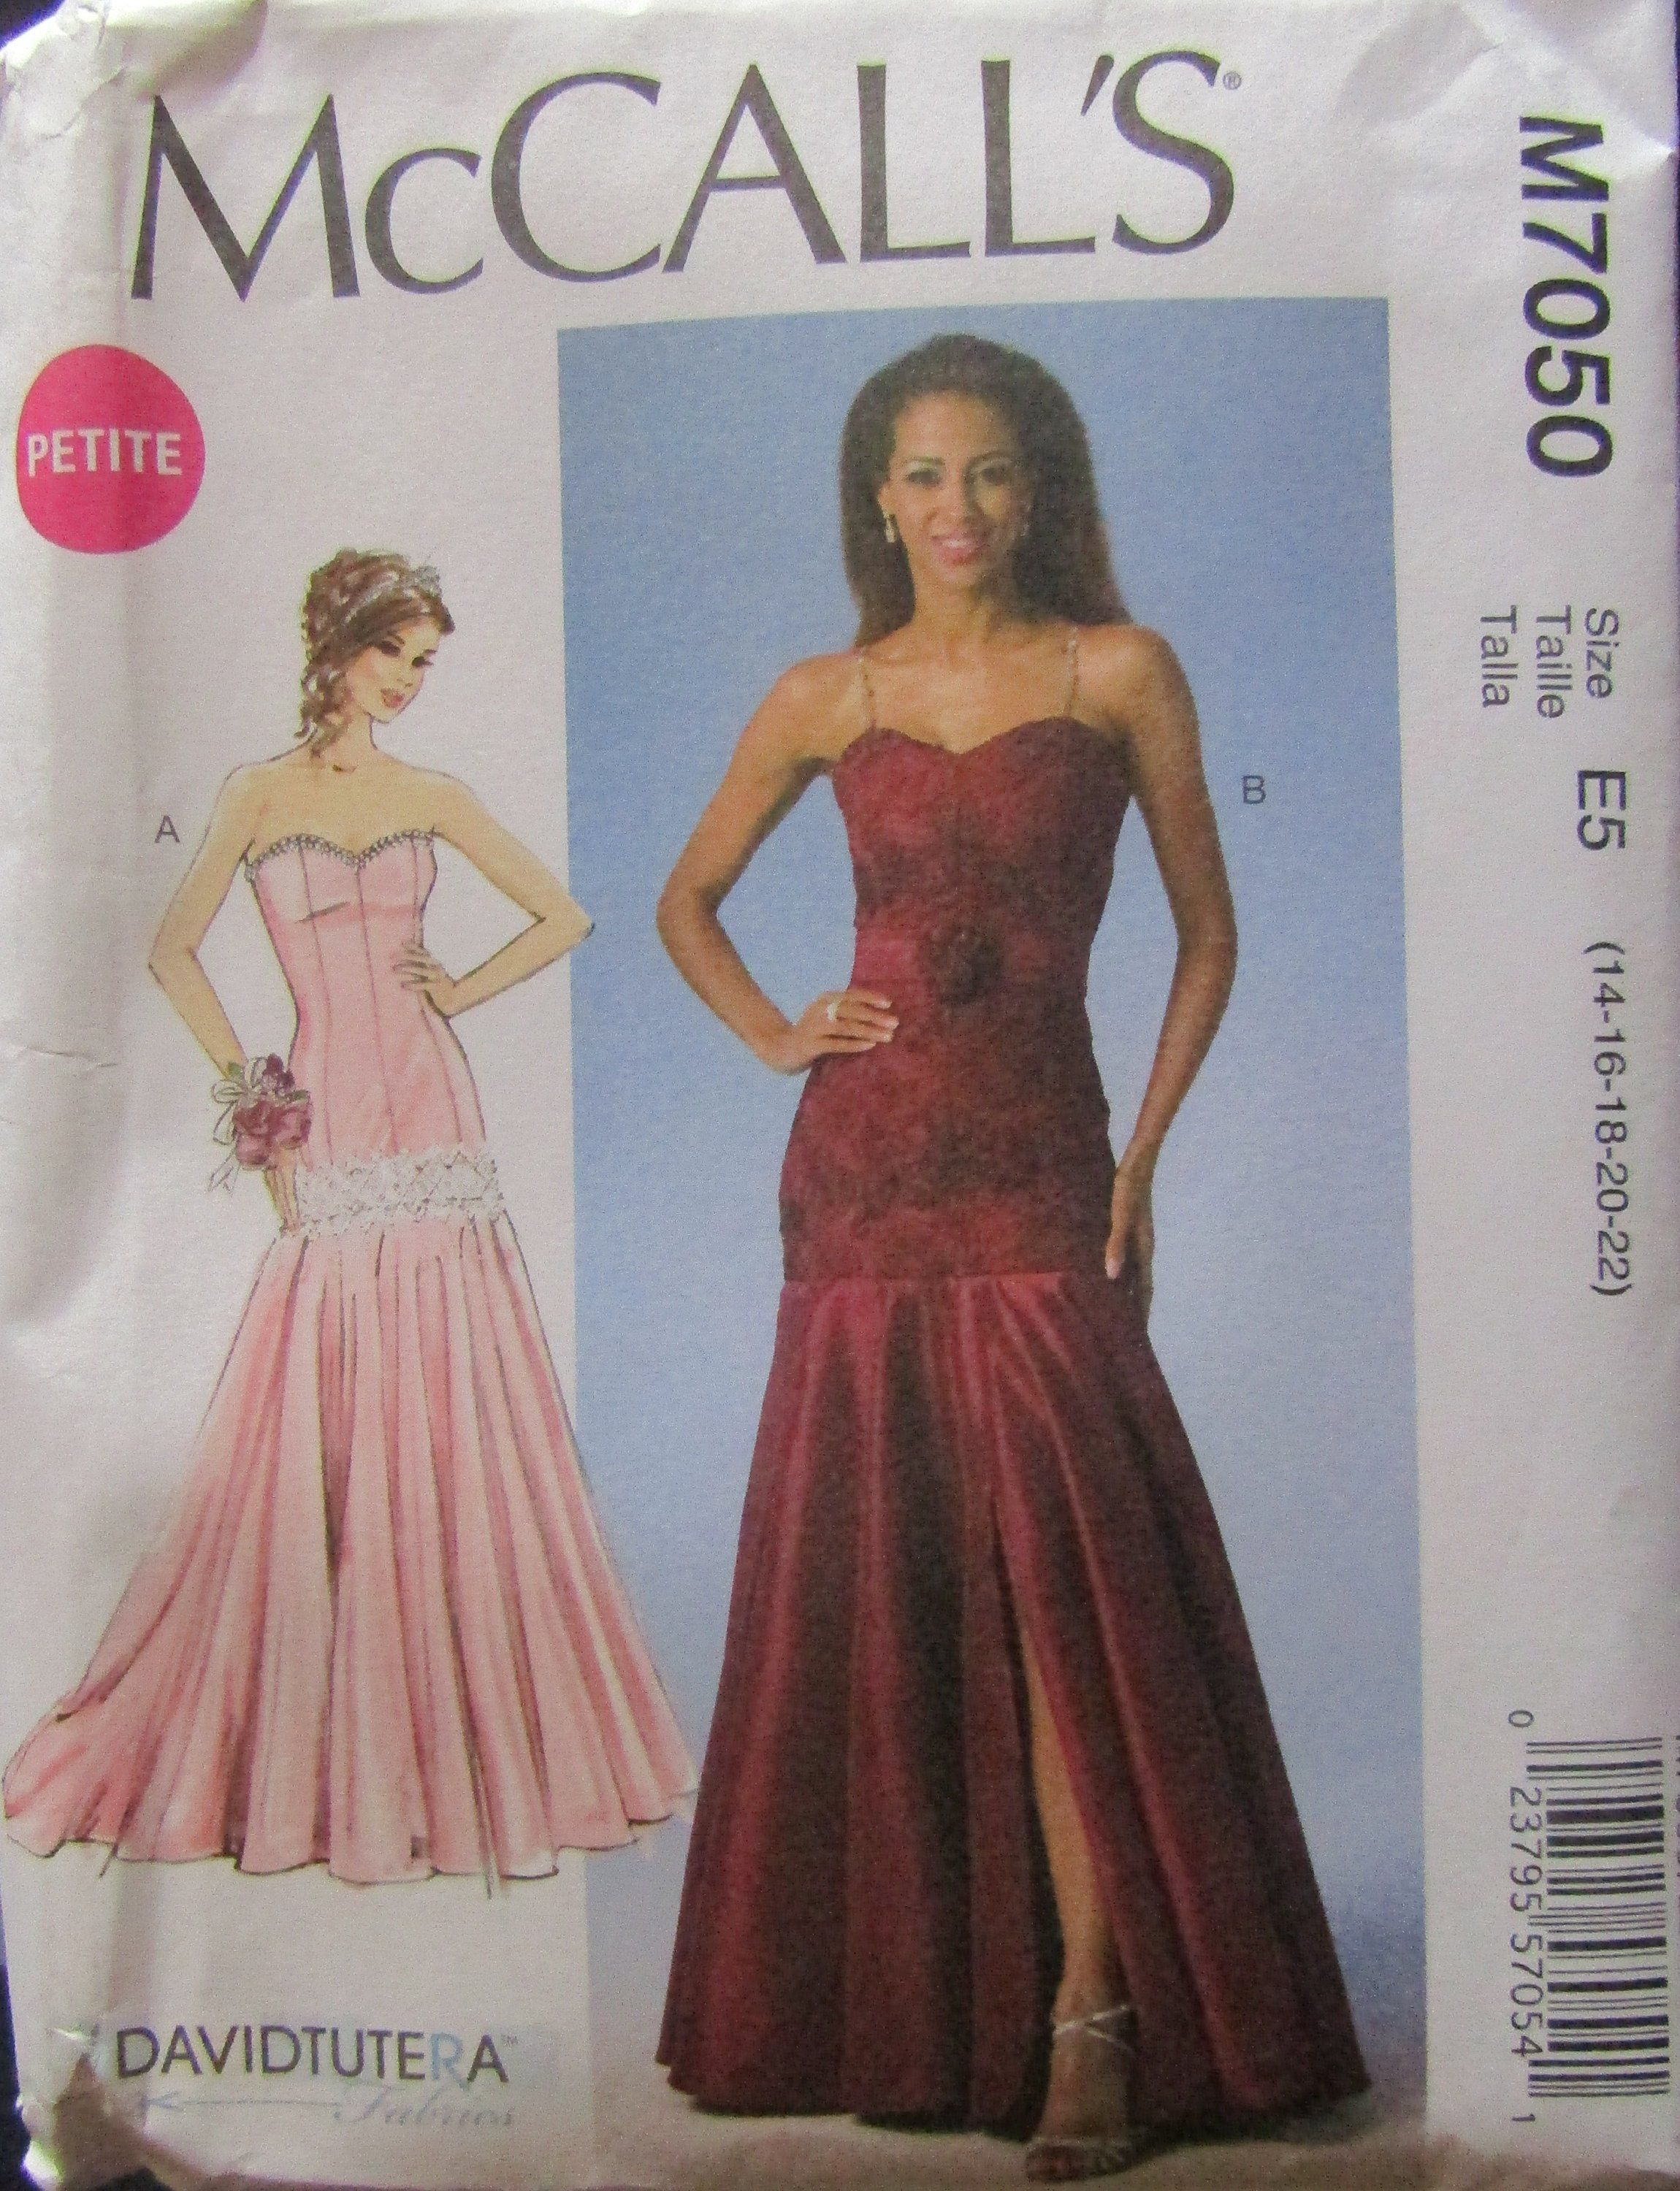 Mccalls 7050 Misses Dresses Belt Sewing Pattern Uncut By